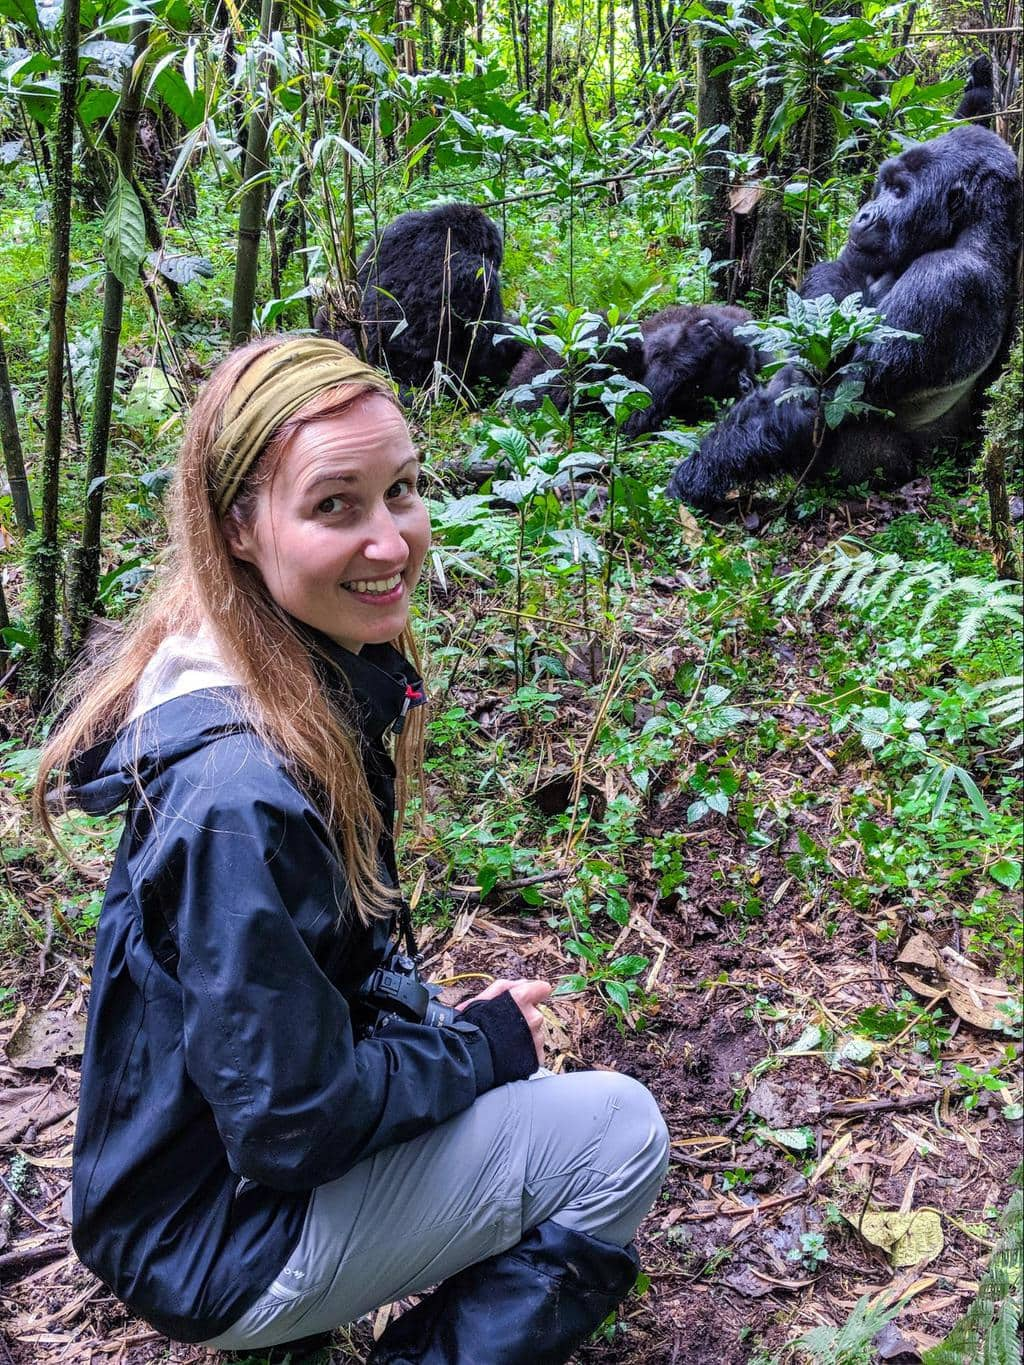 Me and the mountain gorillas in Rwanda